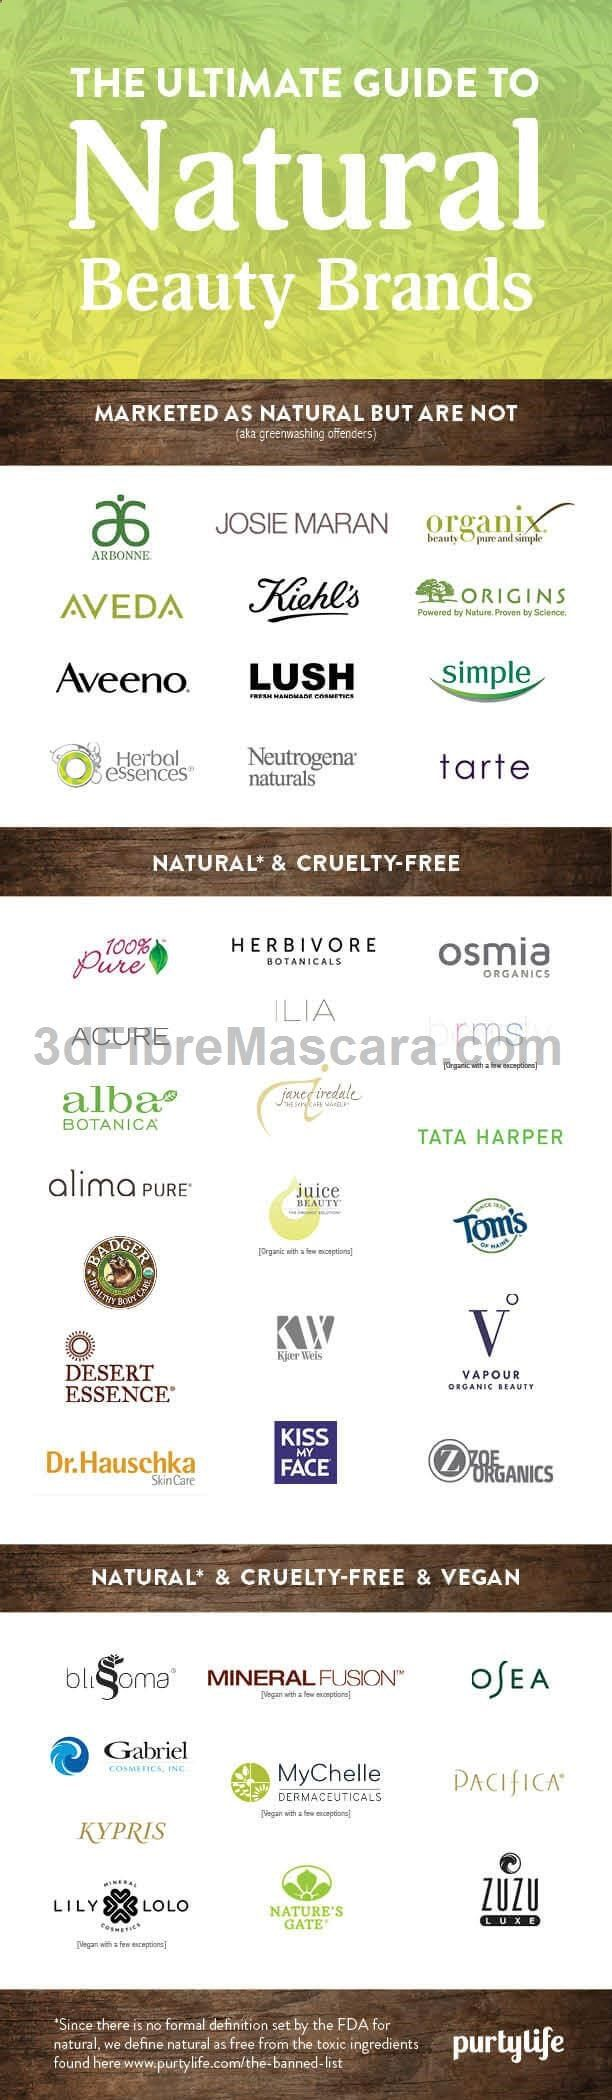 The Ultimate Guide to the Natural, Organic and Vegan Beauty Brands Discover Non-Toxic, Chemical-Free Makeup & Skincare www.purtylife.com... www.addisonrenee.com